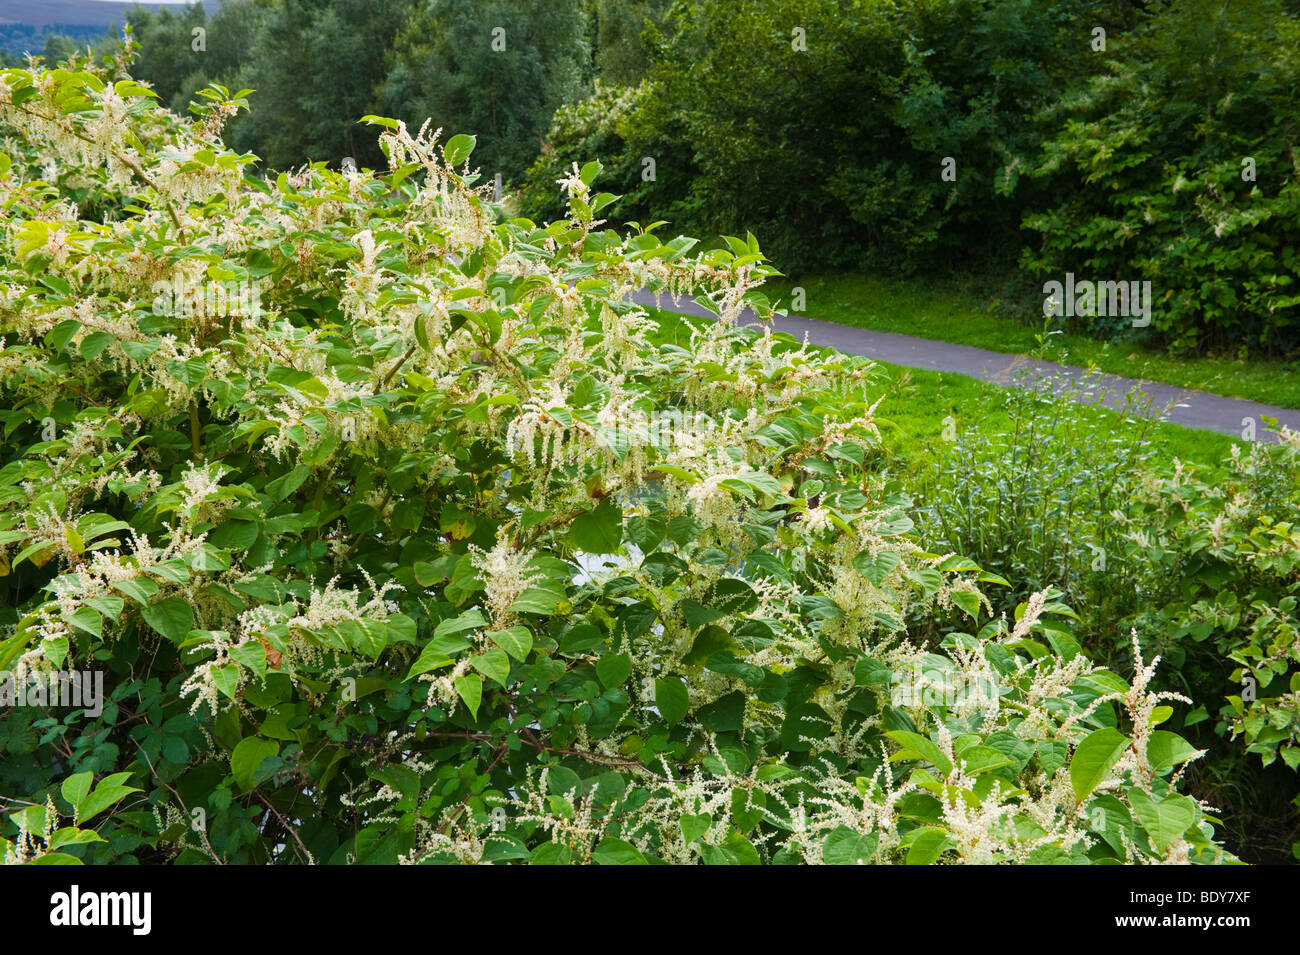 Japanese Knotweed growing vigorously on canal bank at Pontywaun it is endemic in the industrial valleys of South - Stock Image